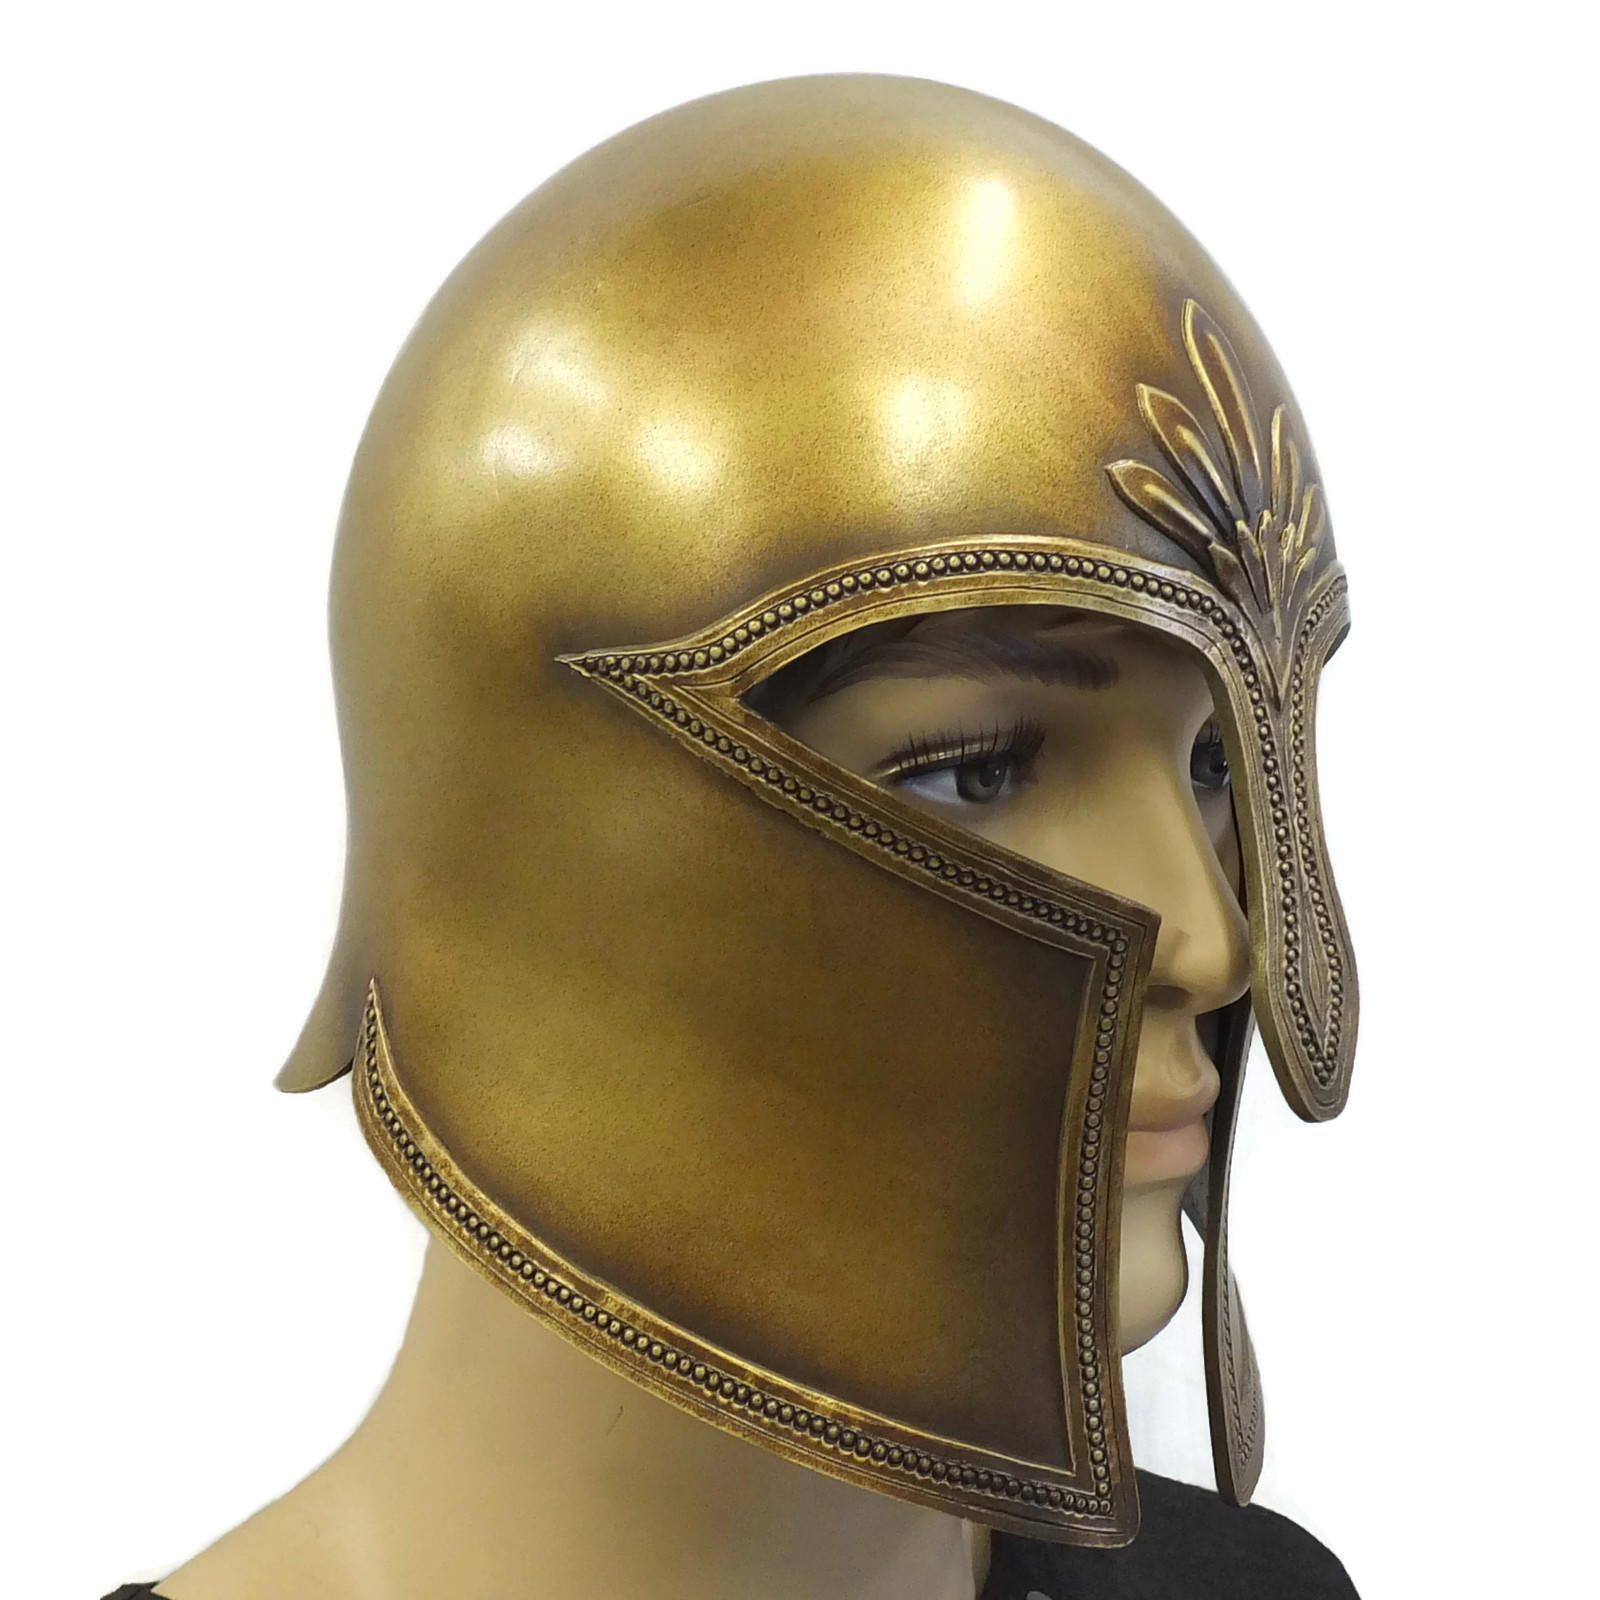 Greek Corinthian style larp helmet on model side view